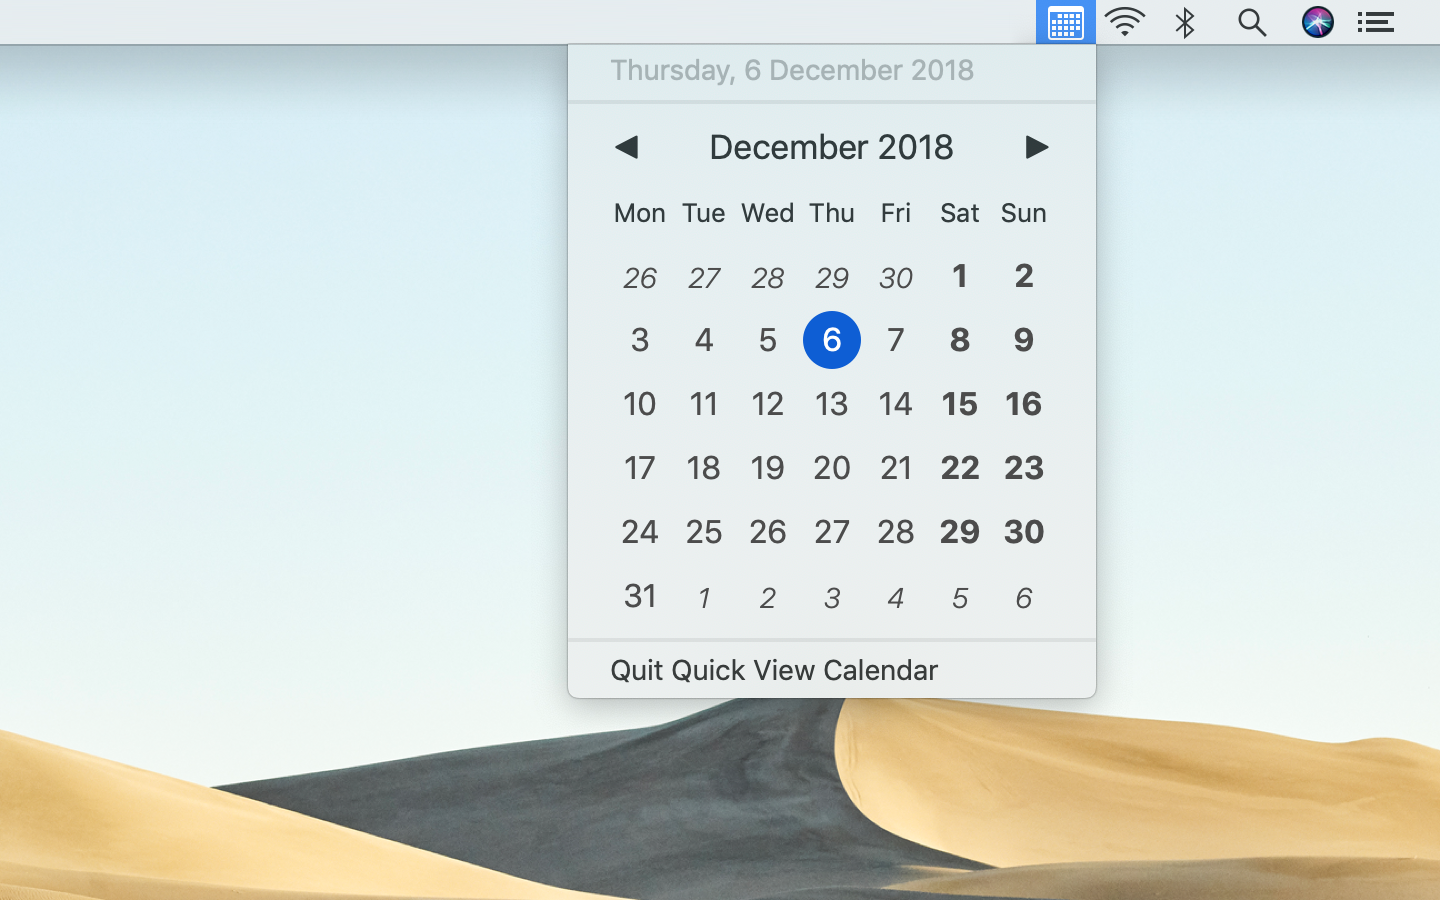 Quick View Calendar adapts to light mode